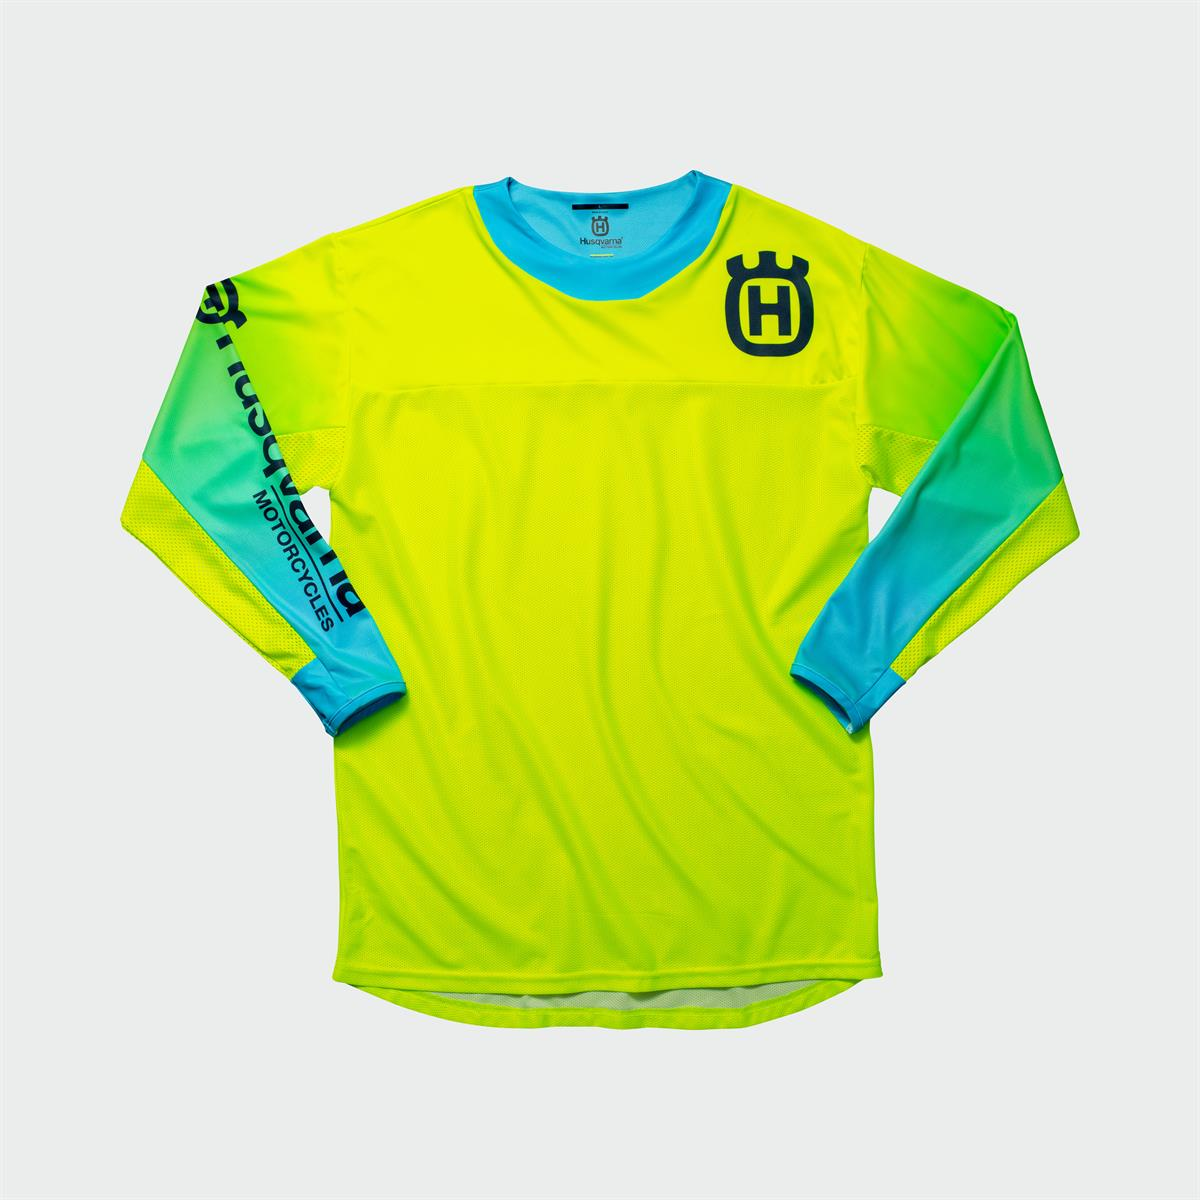 Husqvarna Functional Clothing - GOTLAND SHIRT YELLOW